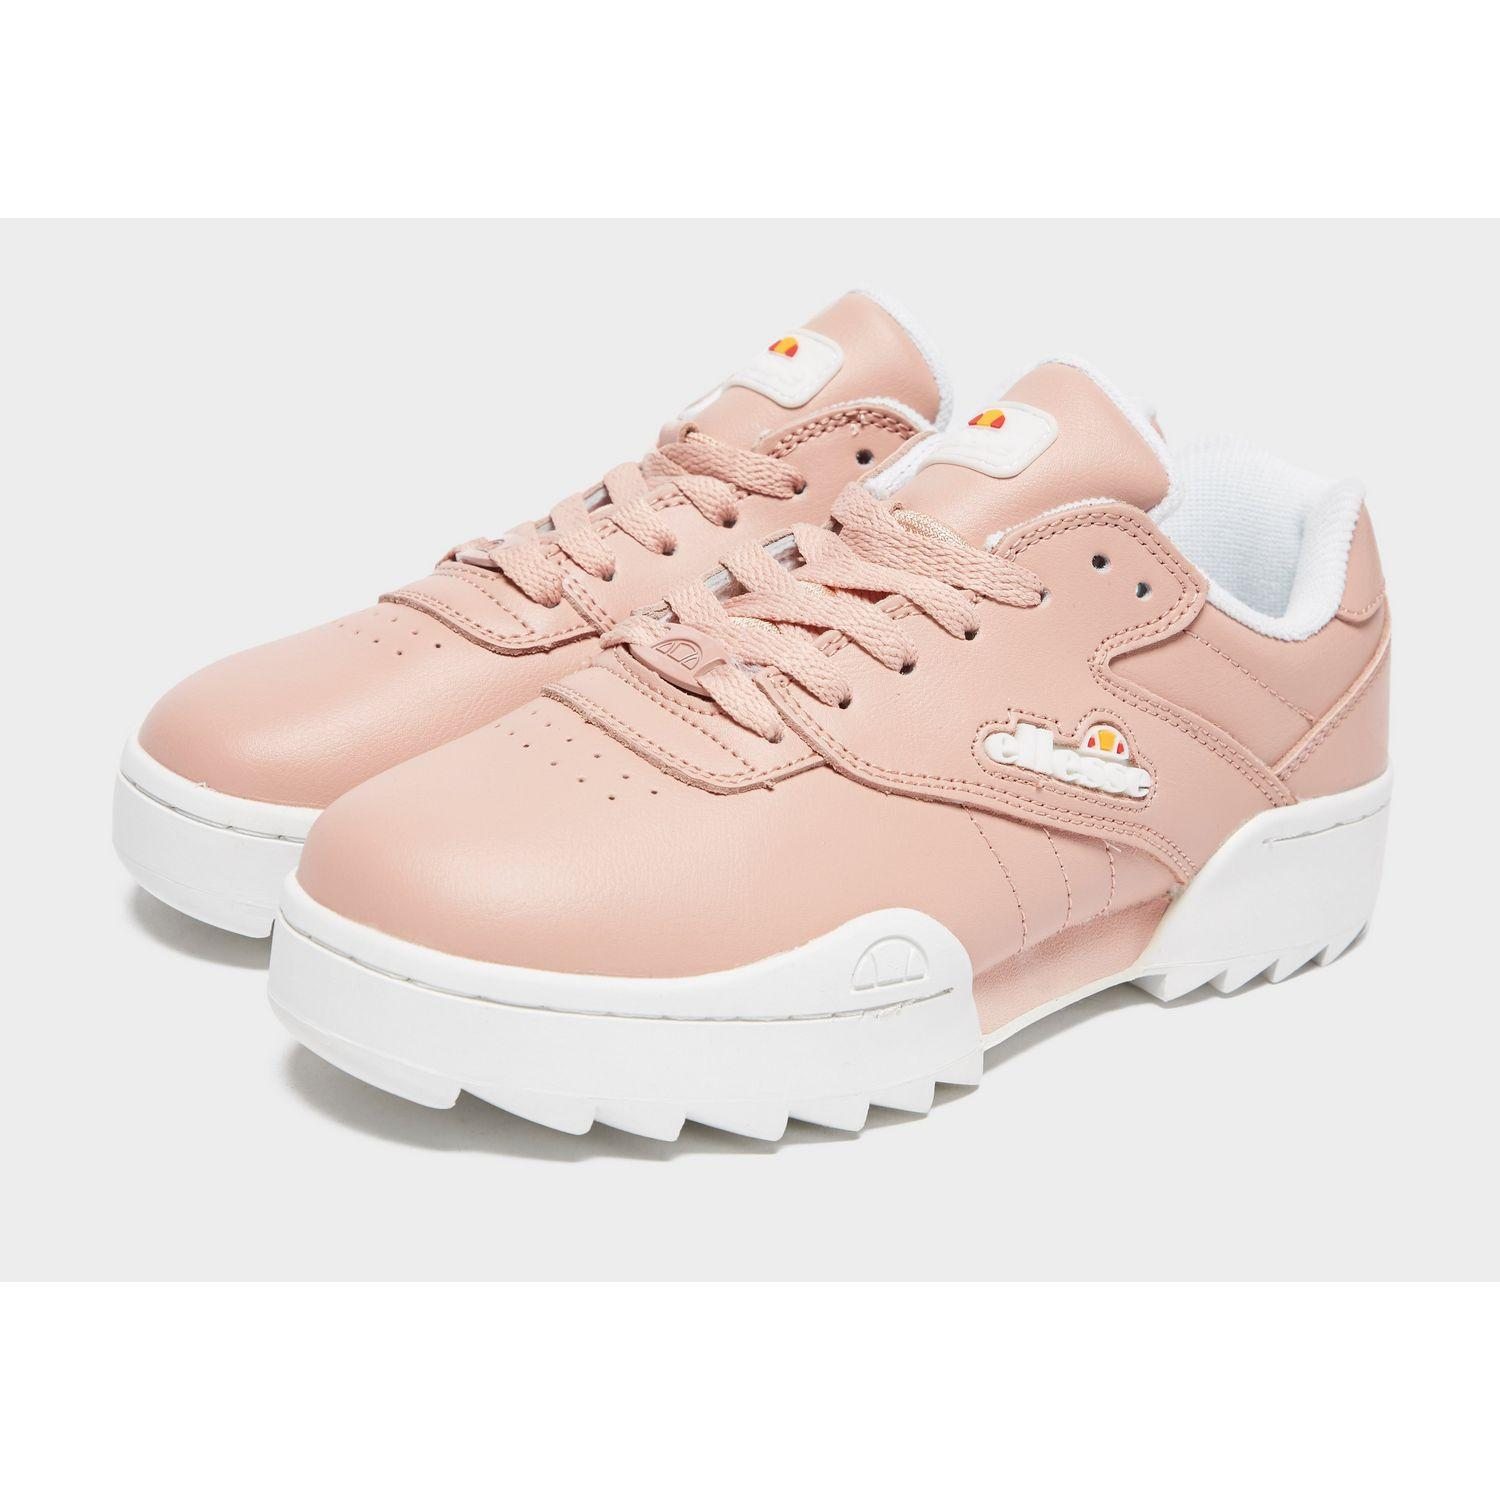 Ellesse Leather Plativo in Pink/White